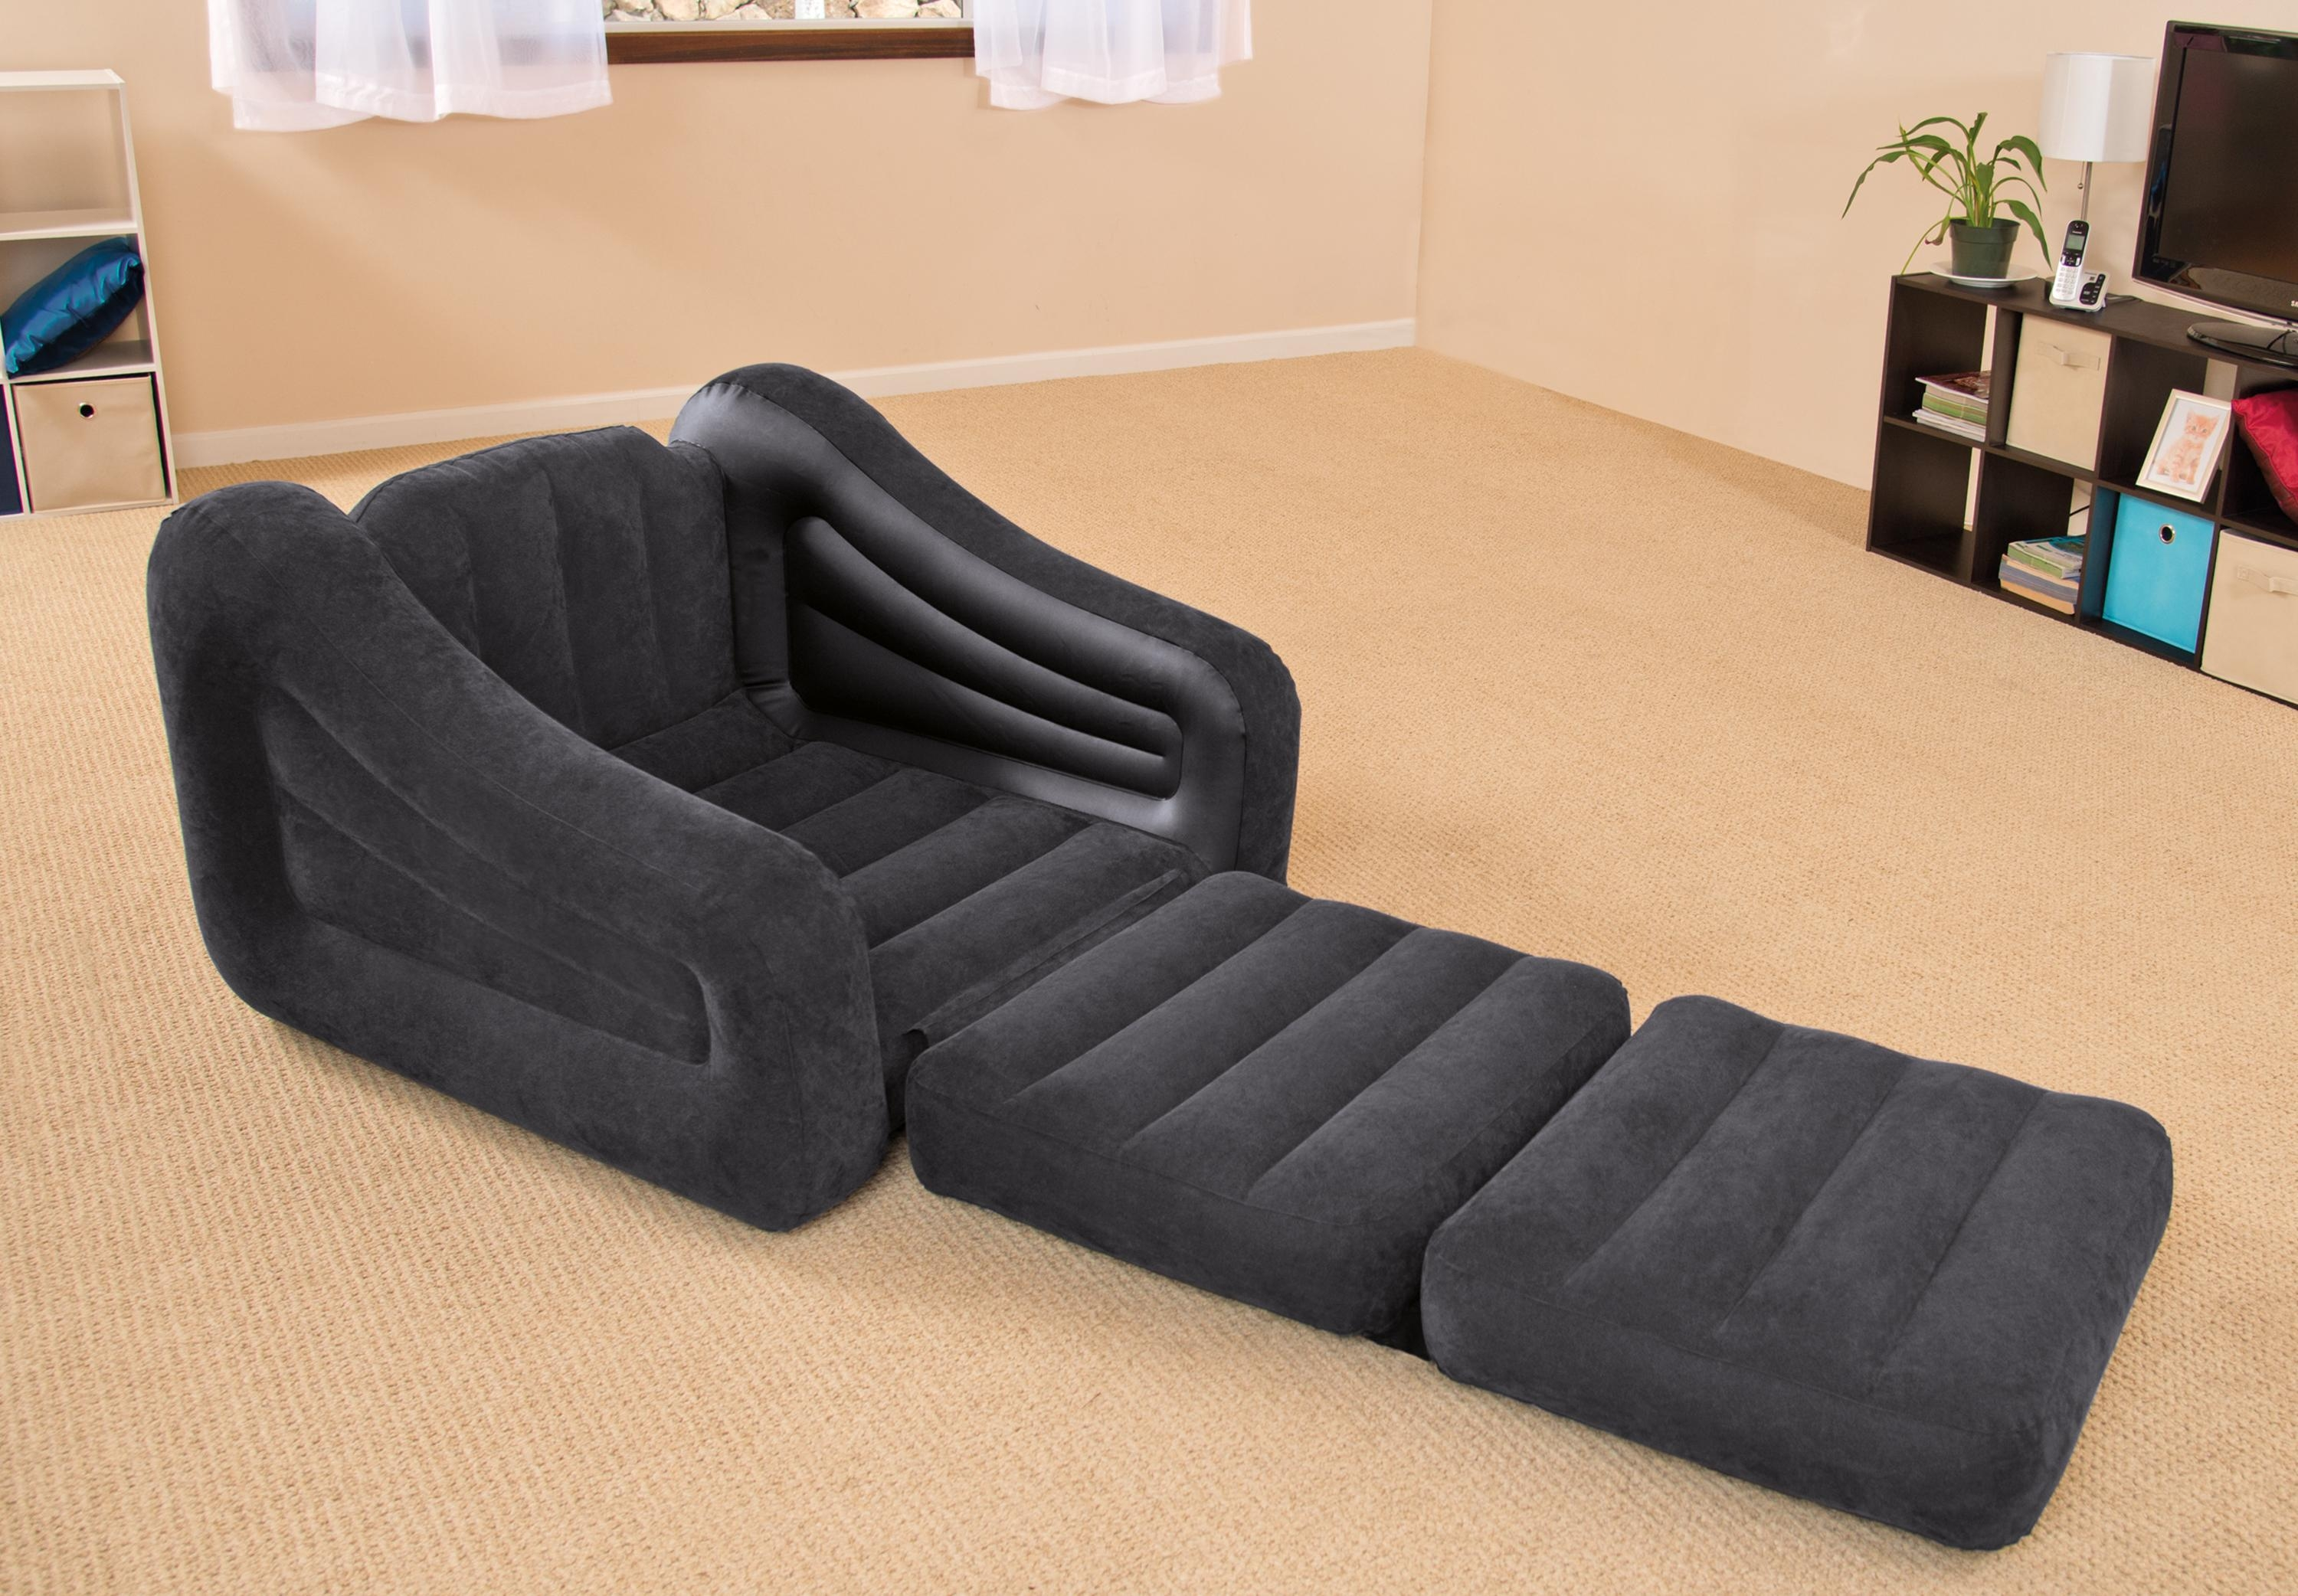 Furniture: Comfort Inflatable Furniture Walmart For Your Relaxing Intended For Inflatable Sofas And Chairs (Image 6 of 20)